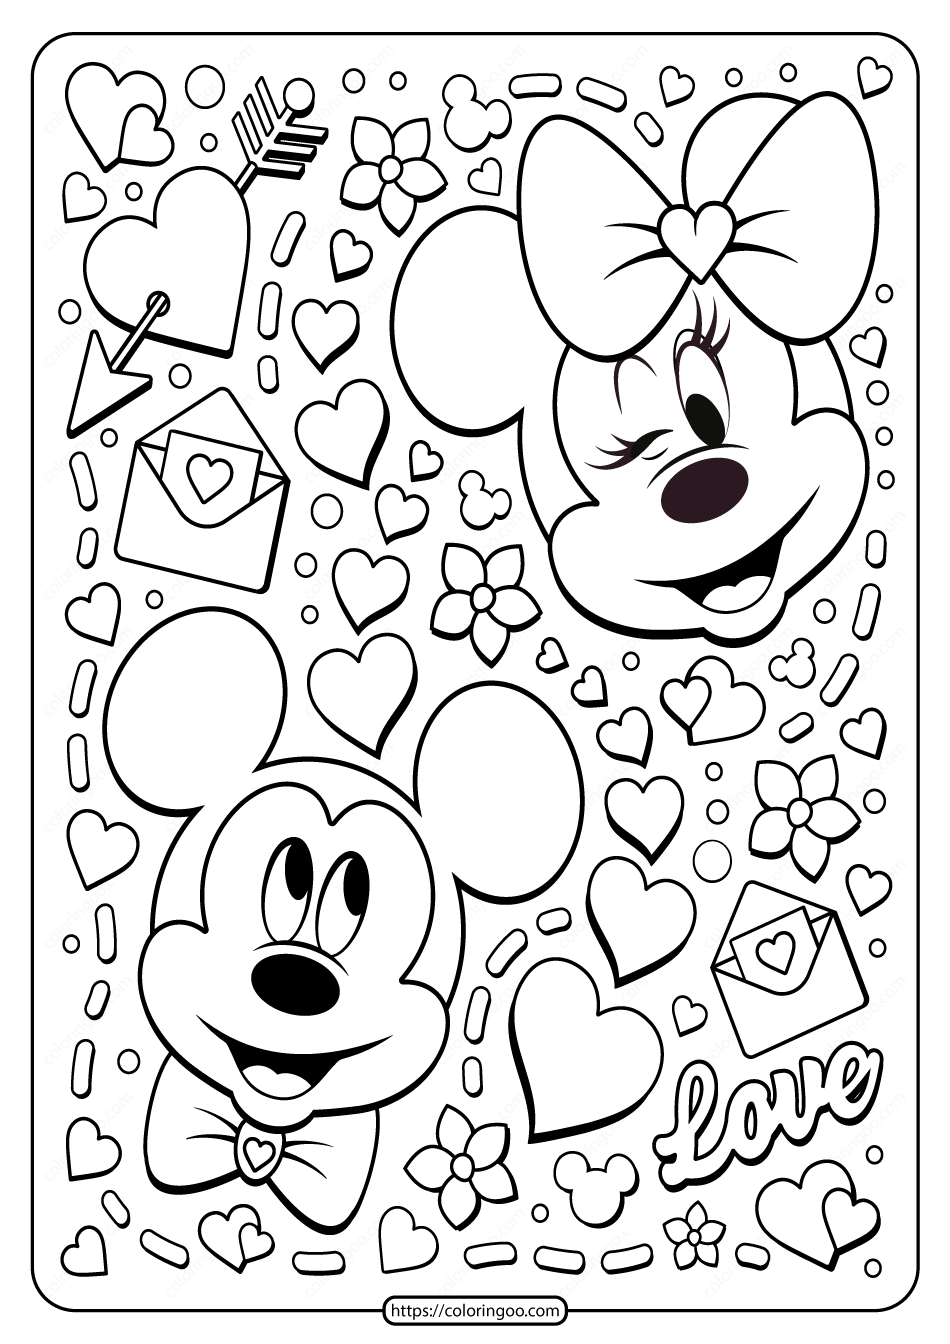 Mickey Minnie Mouse Valentine Coloring Page Minnie Mouse Valentines Minnie Mouse Drawing Valentine Coloring Pages